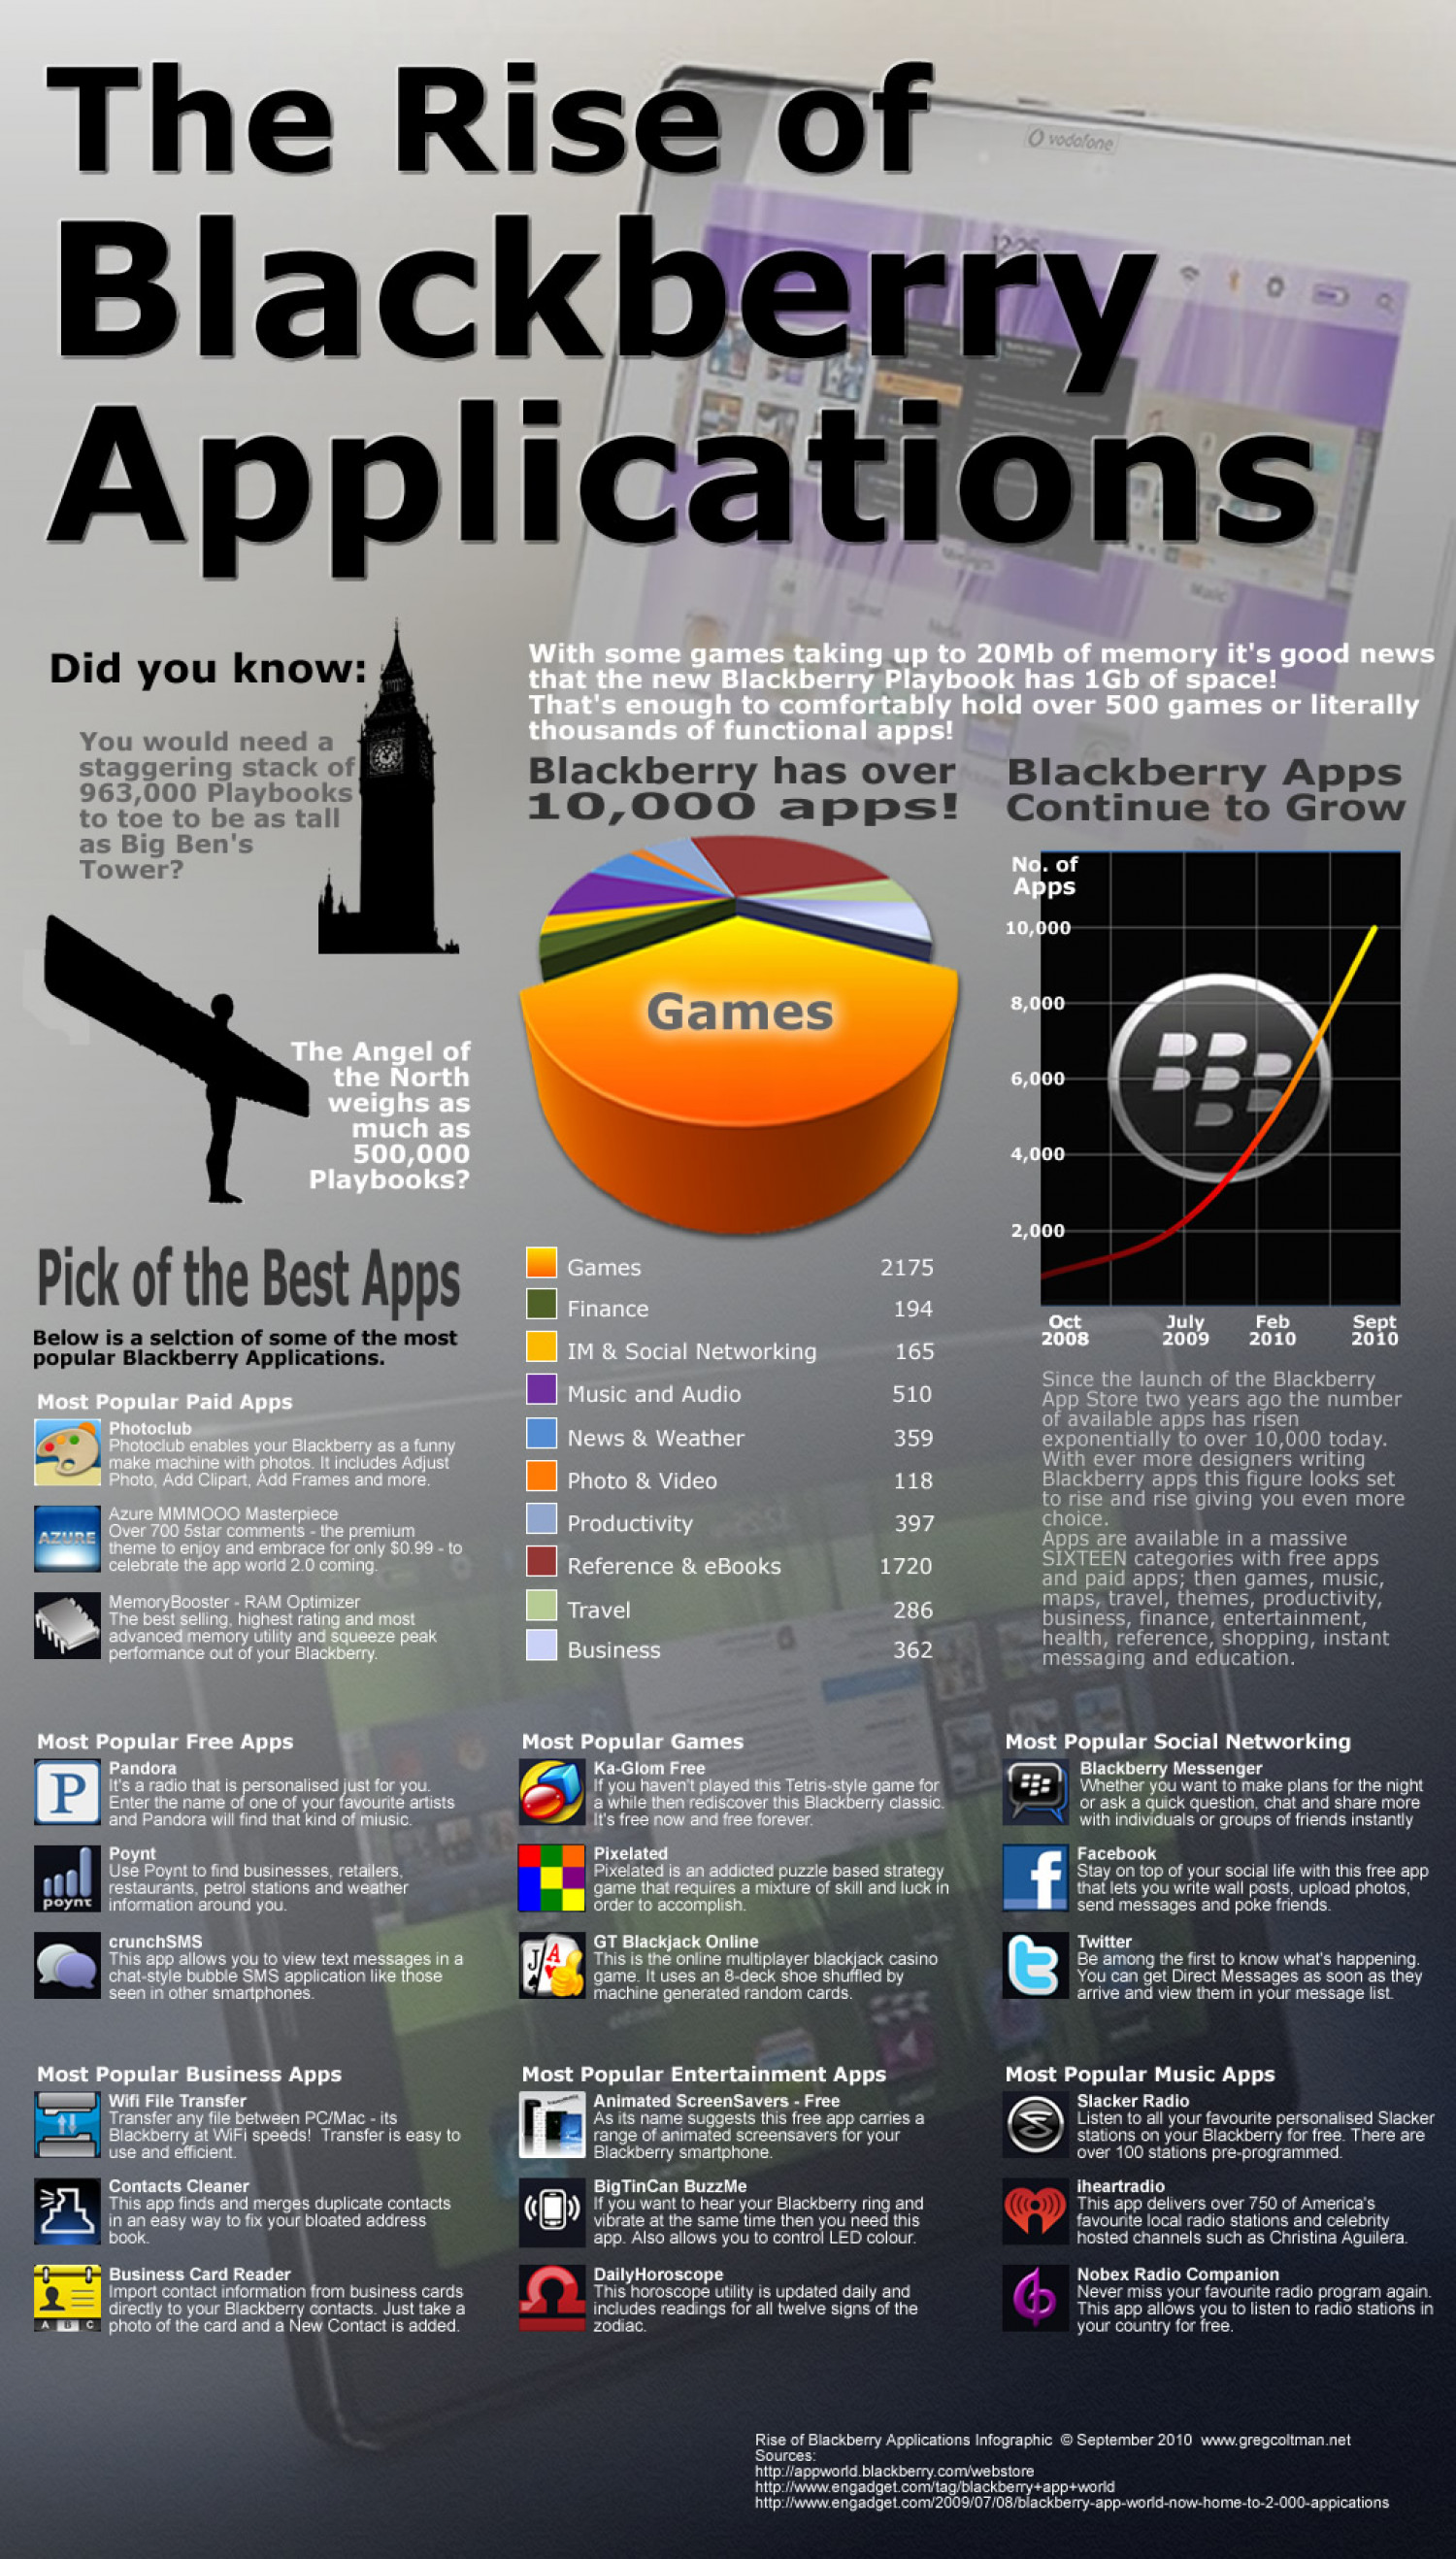 The Rise of Blackberry Applications Infographic